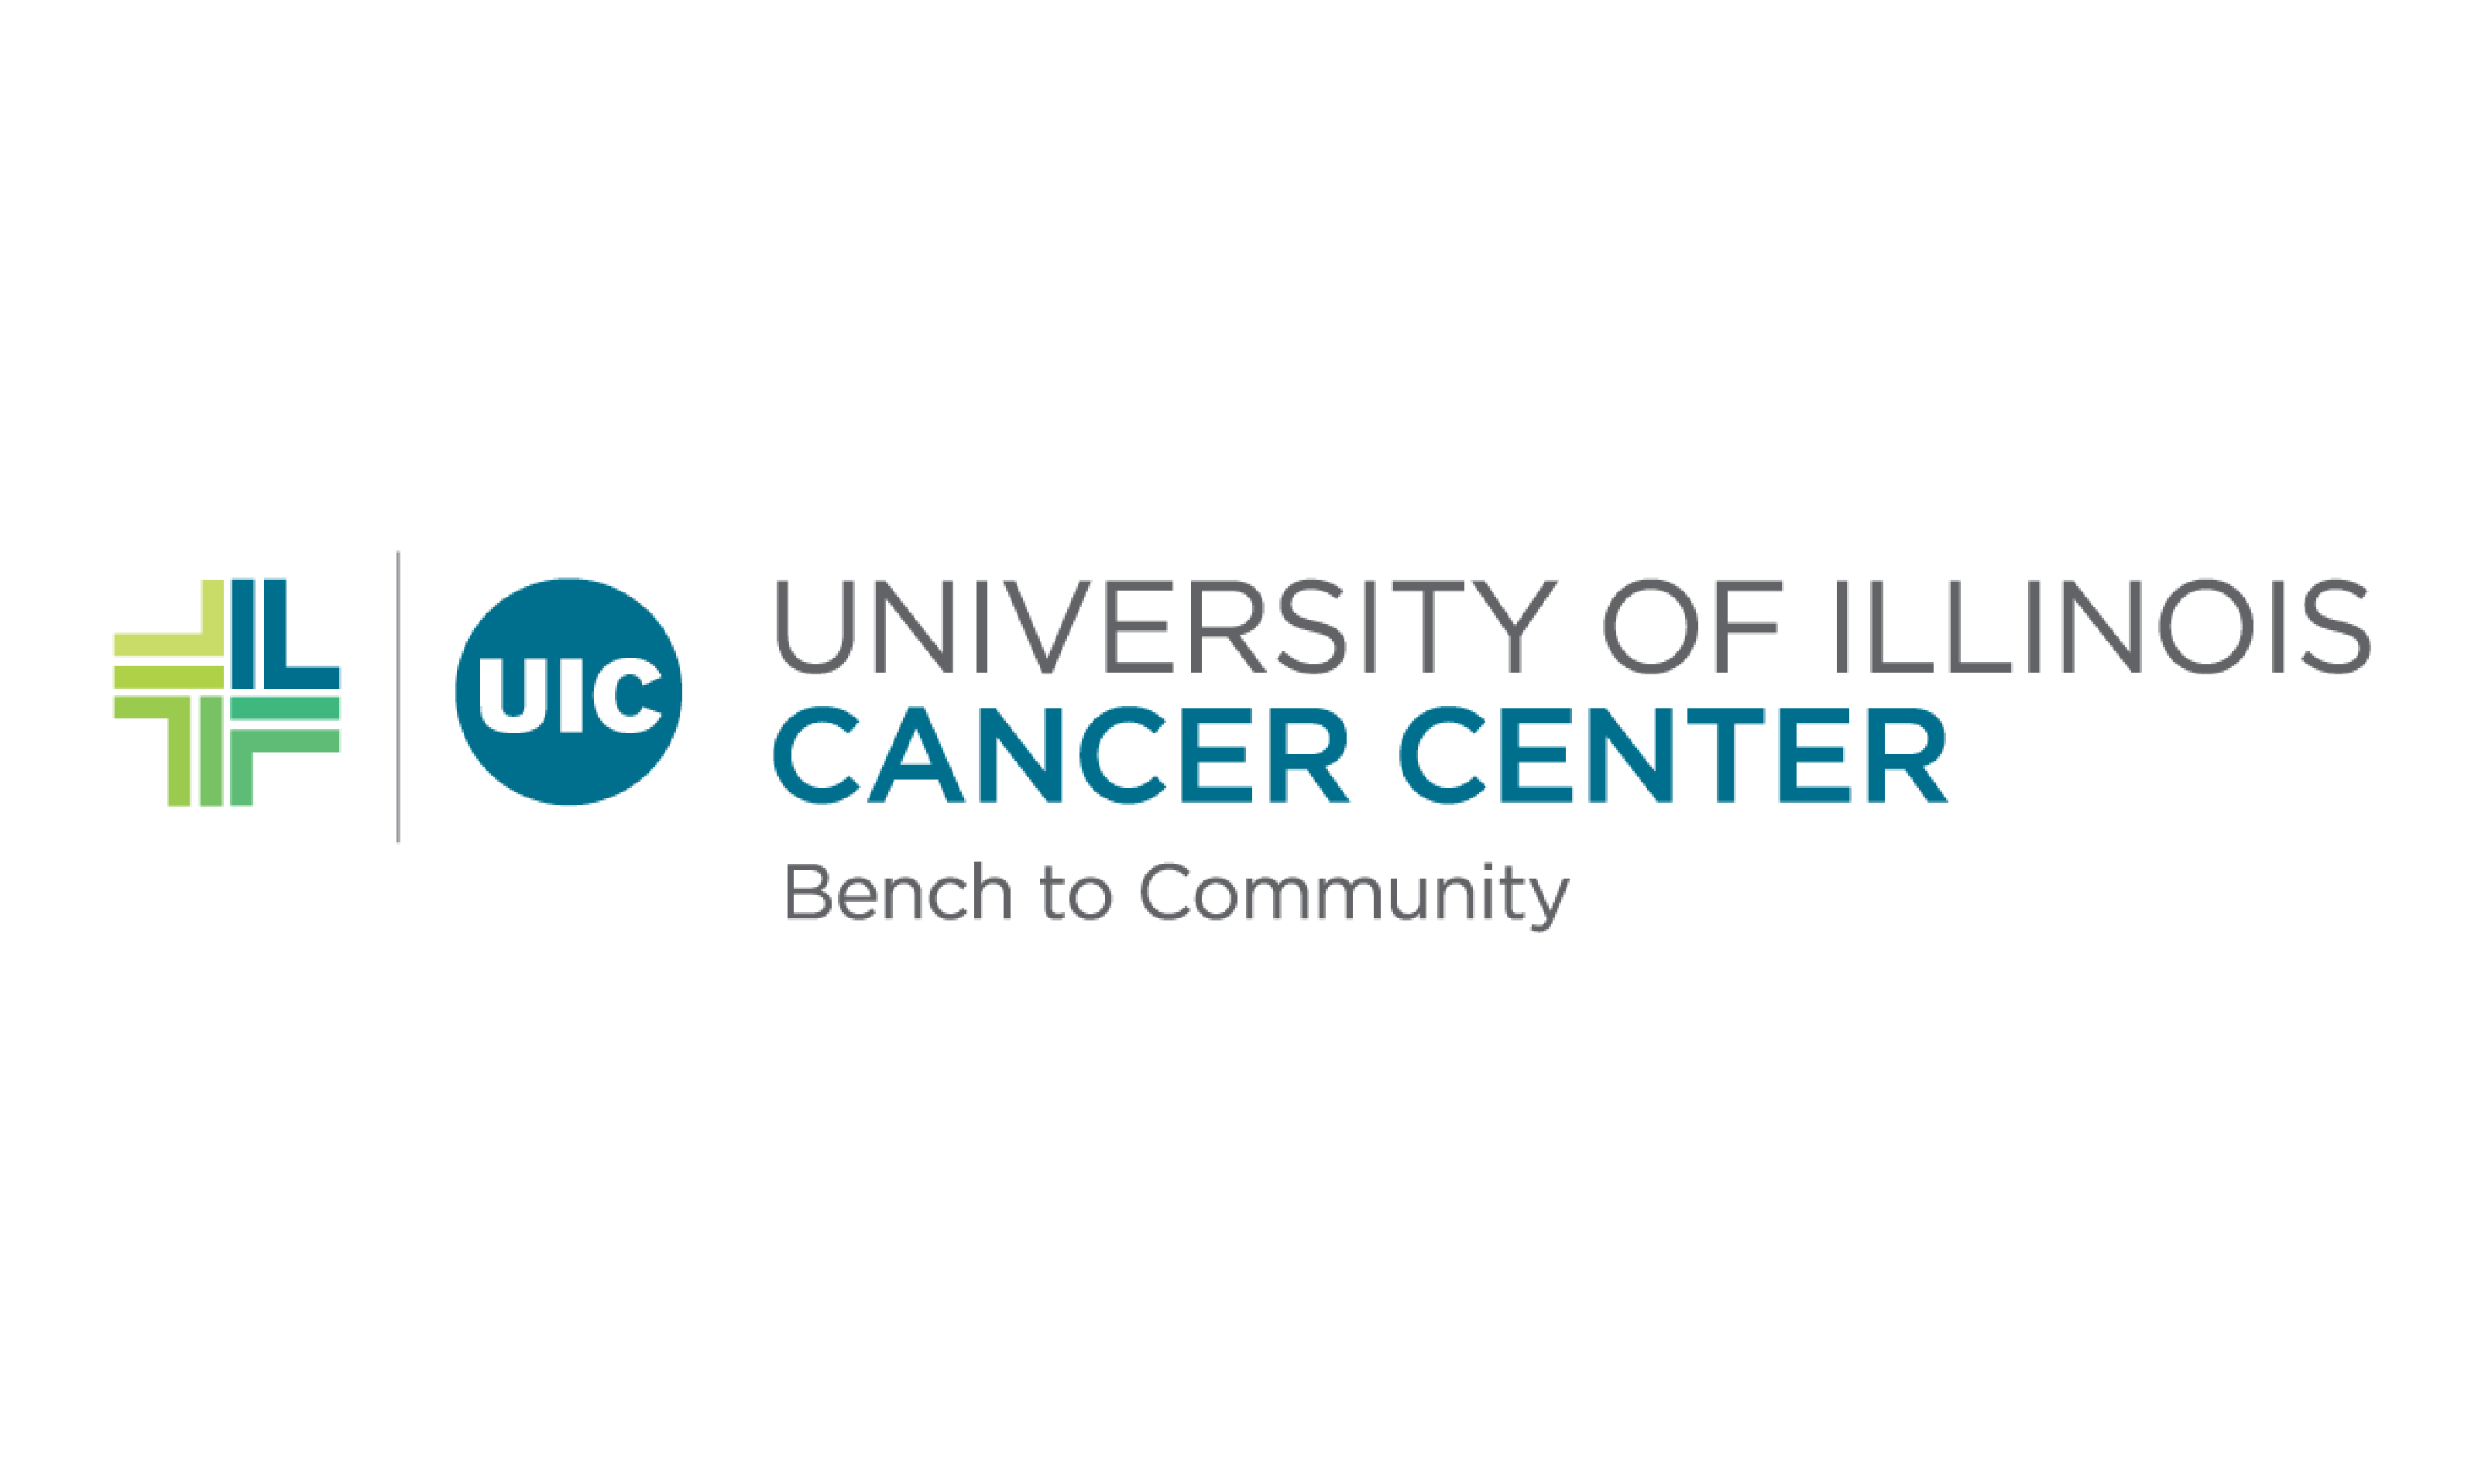 UI Cancer Center names pilot grant award winners